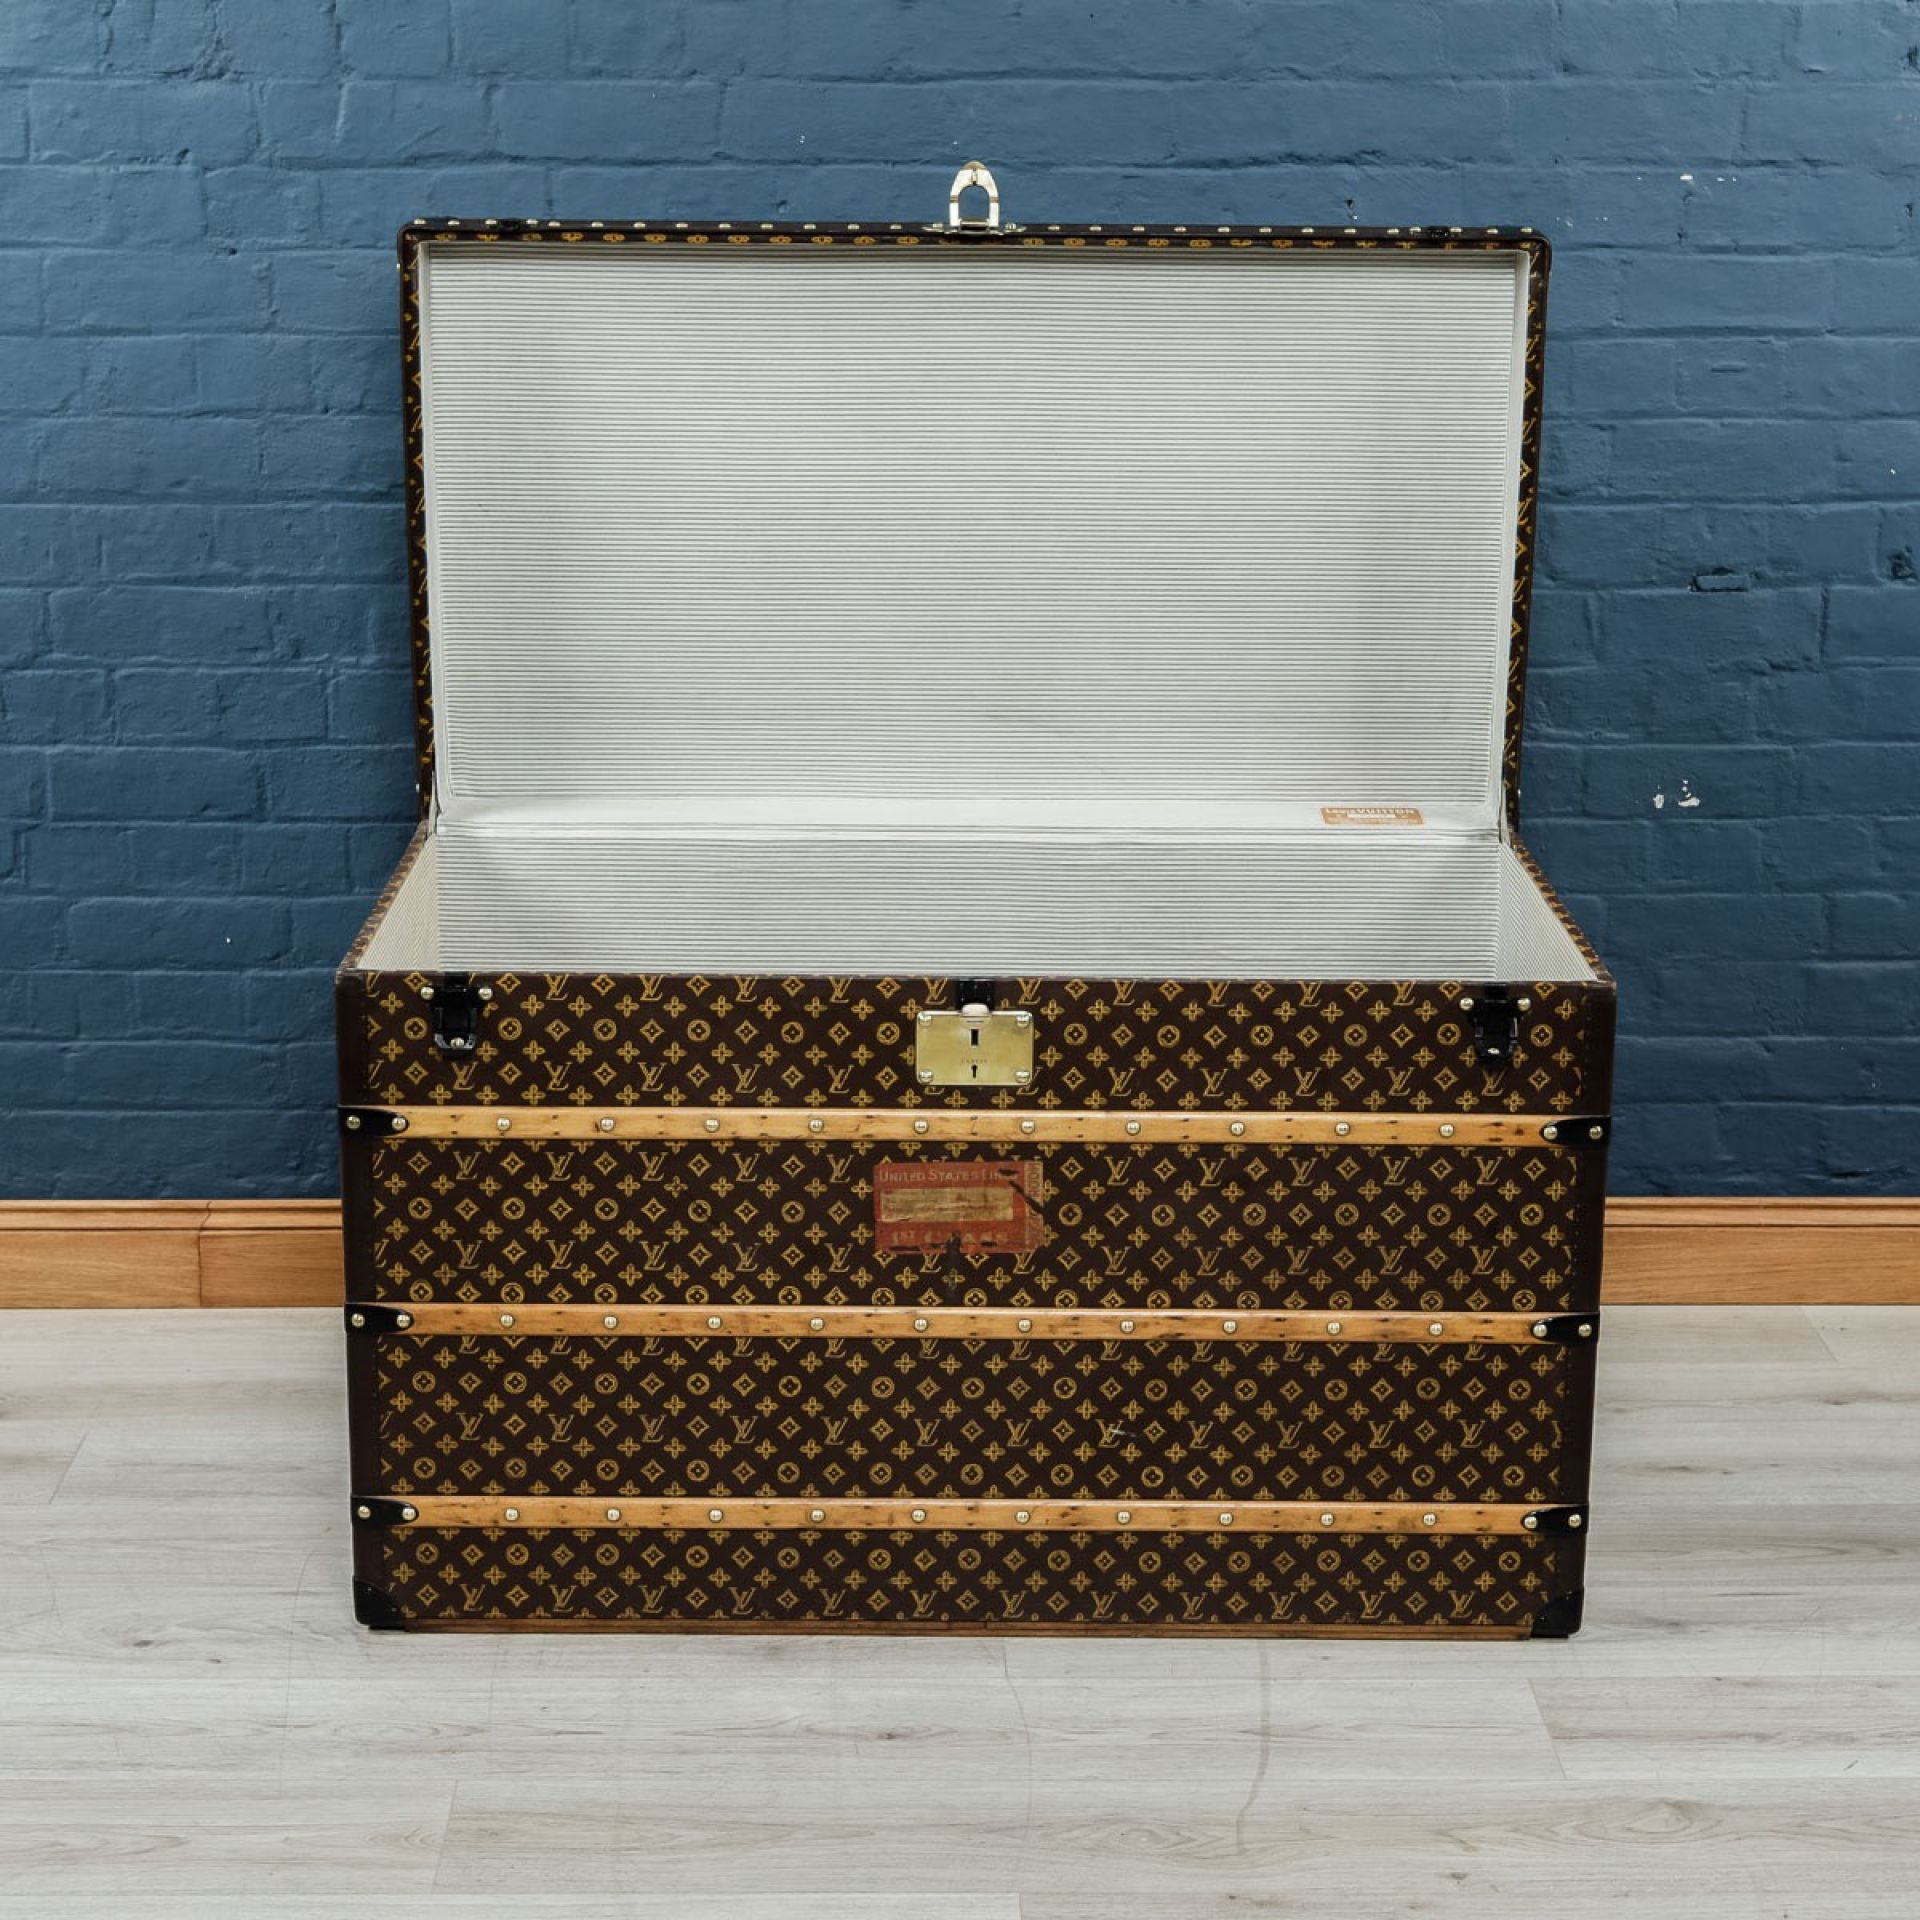 "EARLY 20THC EXQUISITE ""MALLE HAUTE"" LOUIS VUITTON TRUNK"